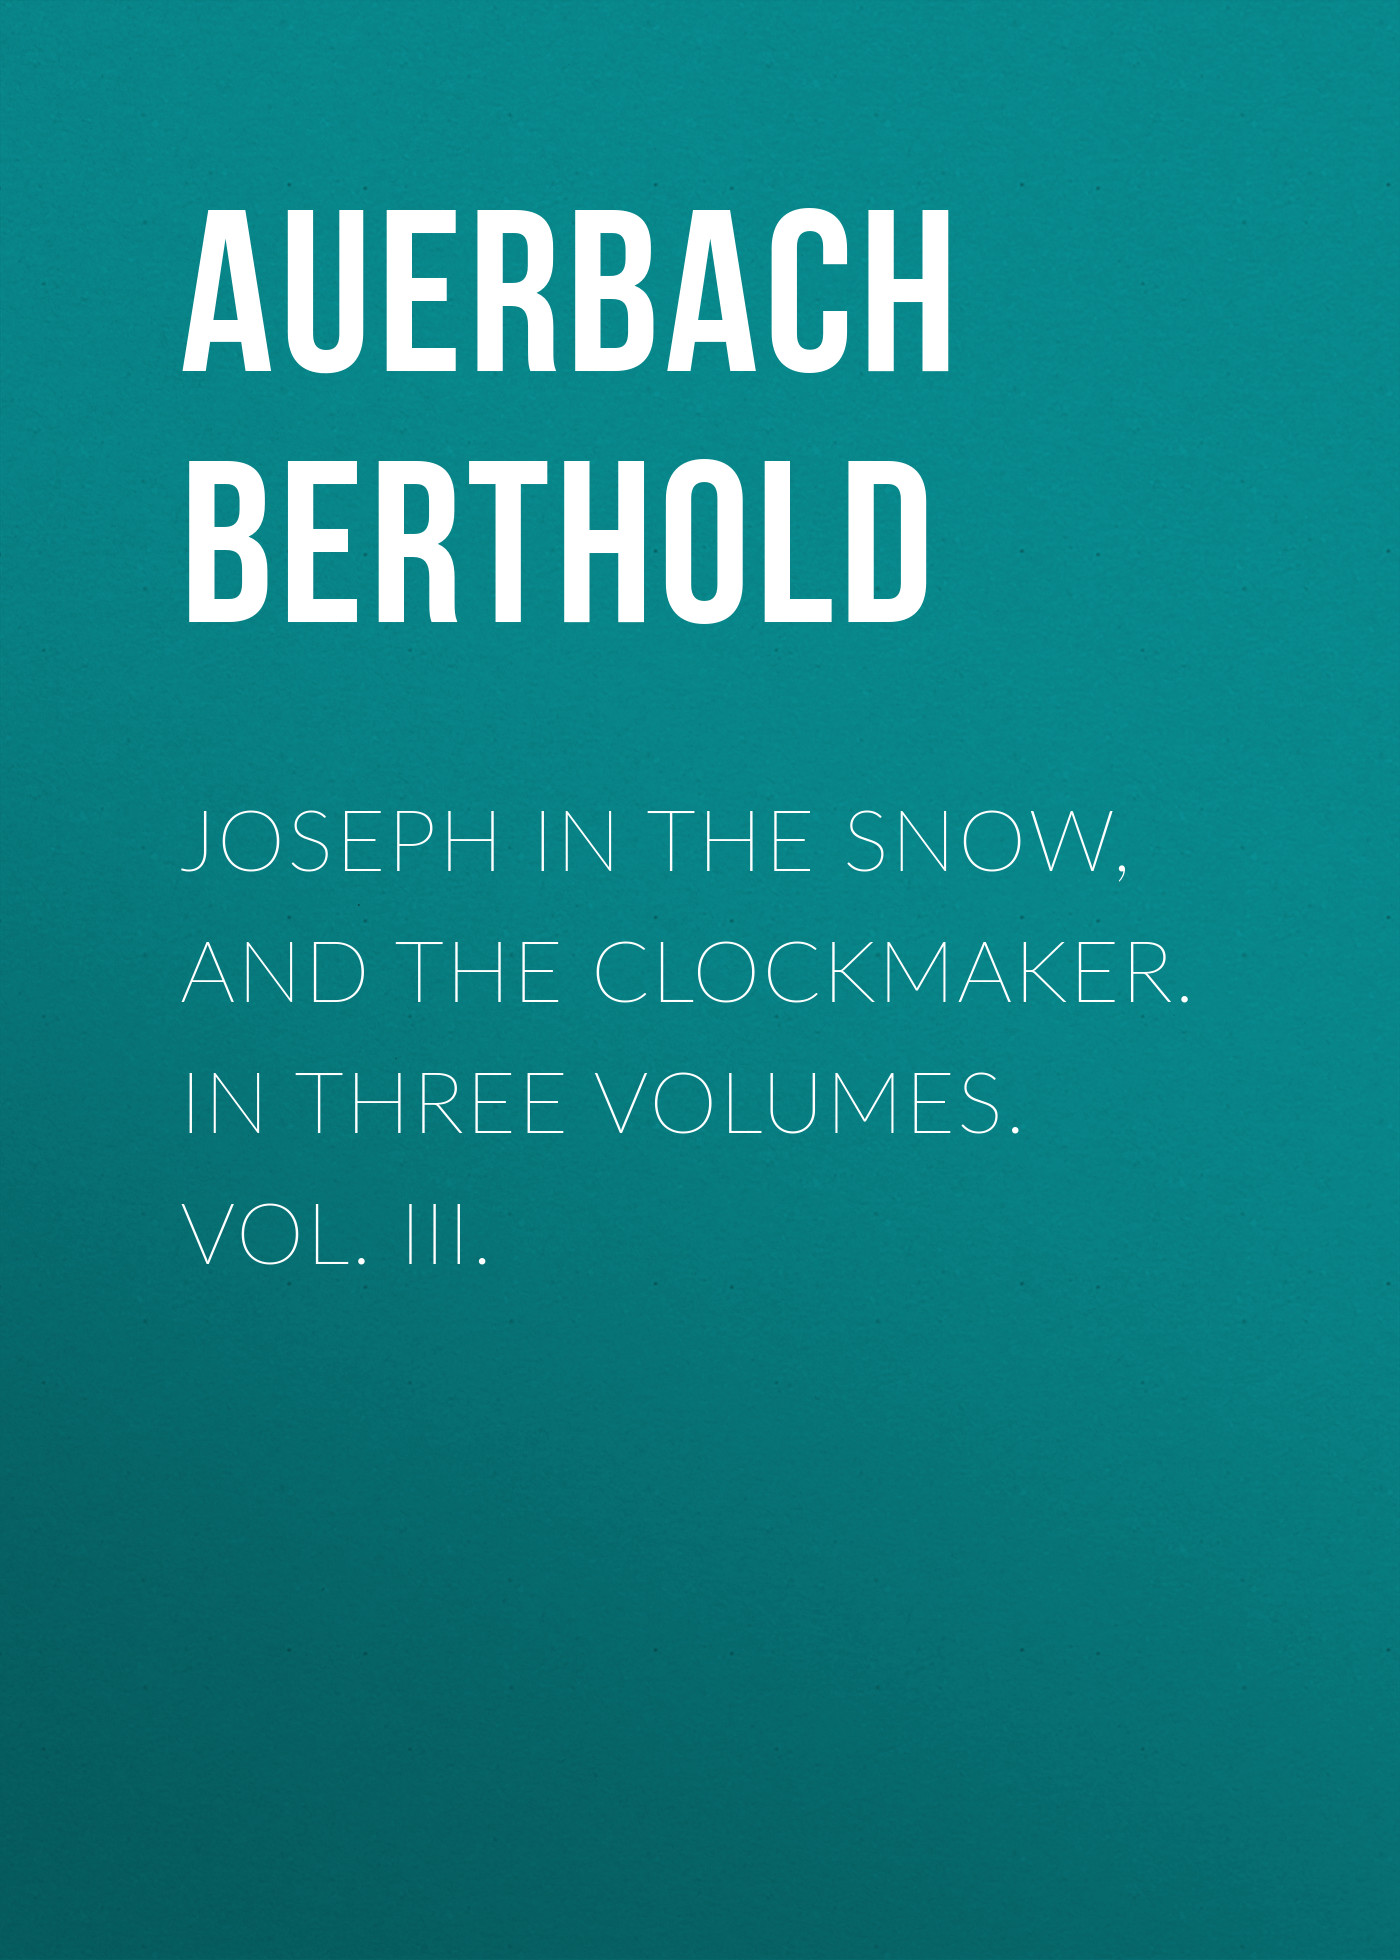 Auerbach Berthold Joseph in the Snow, and The Clockmaker. In Three Volumes. Vol. III.